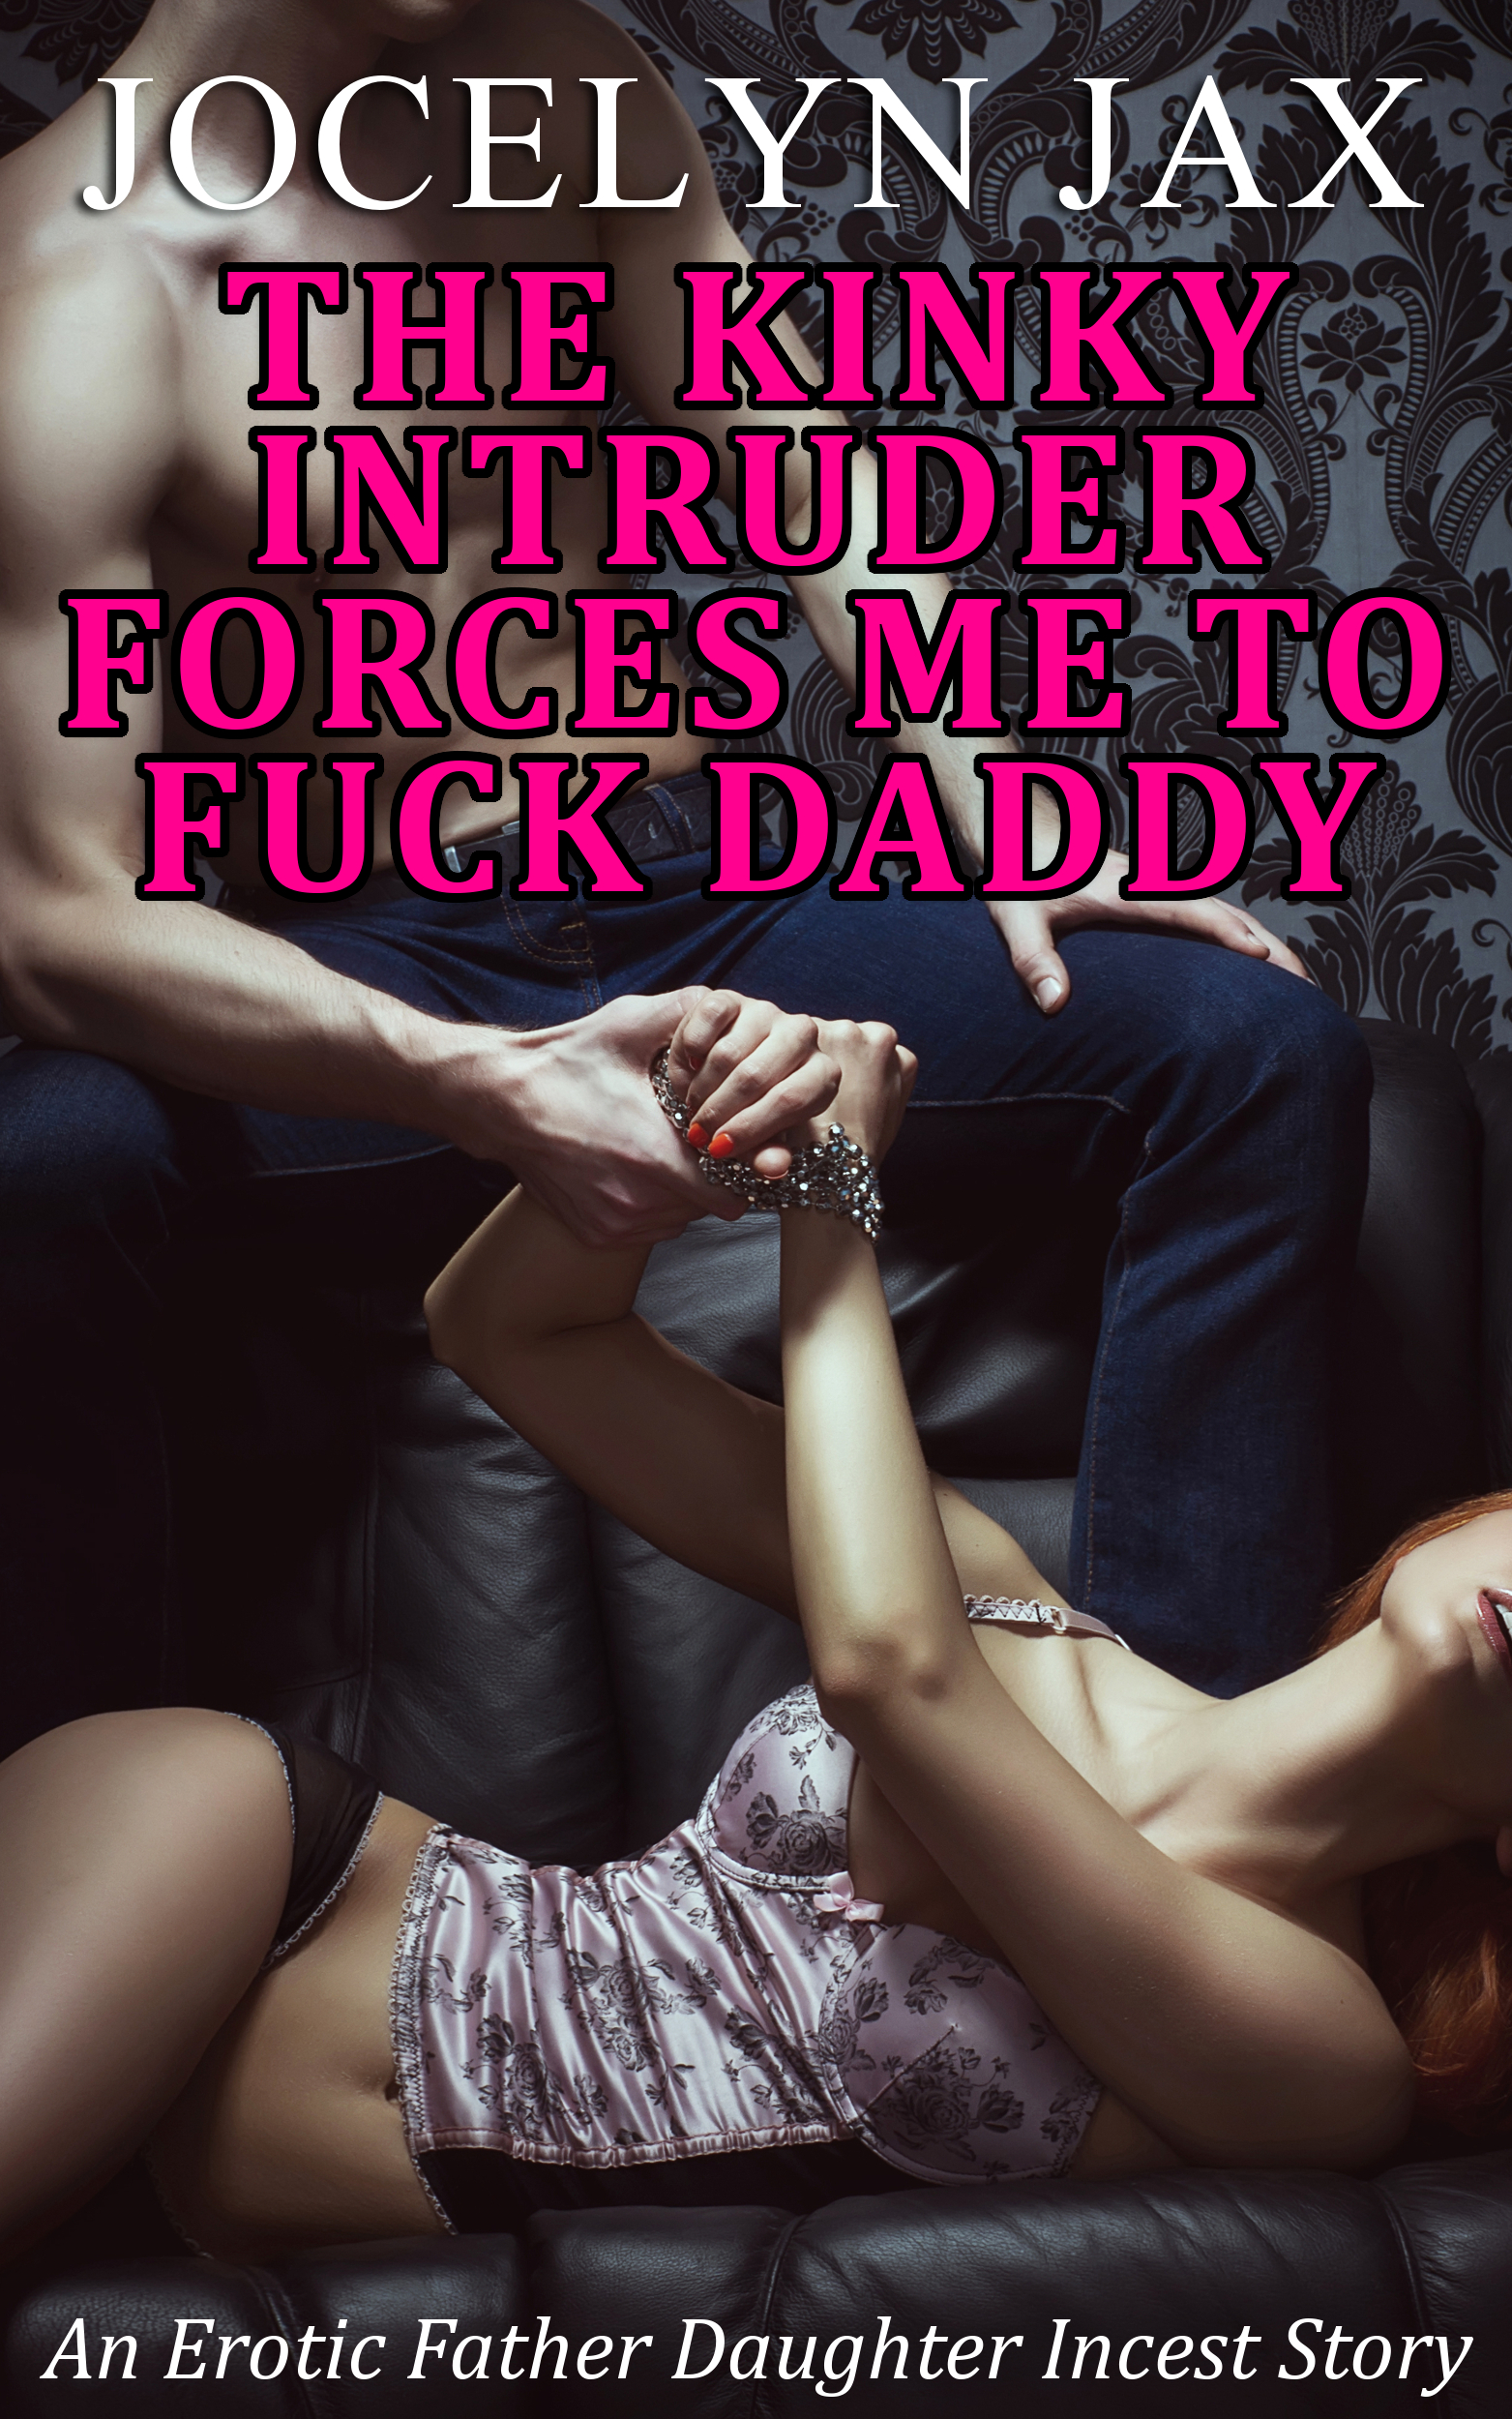 The Kinky Intruder Forces Me To Fuck Daddy